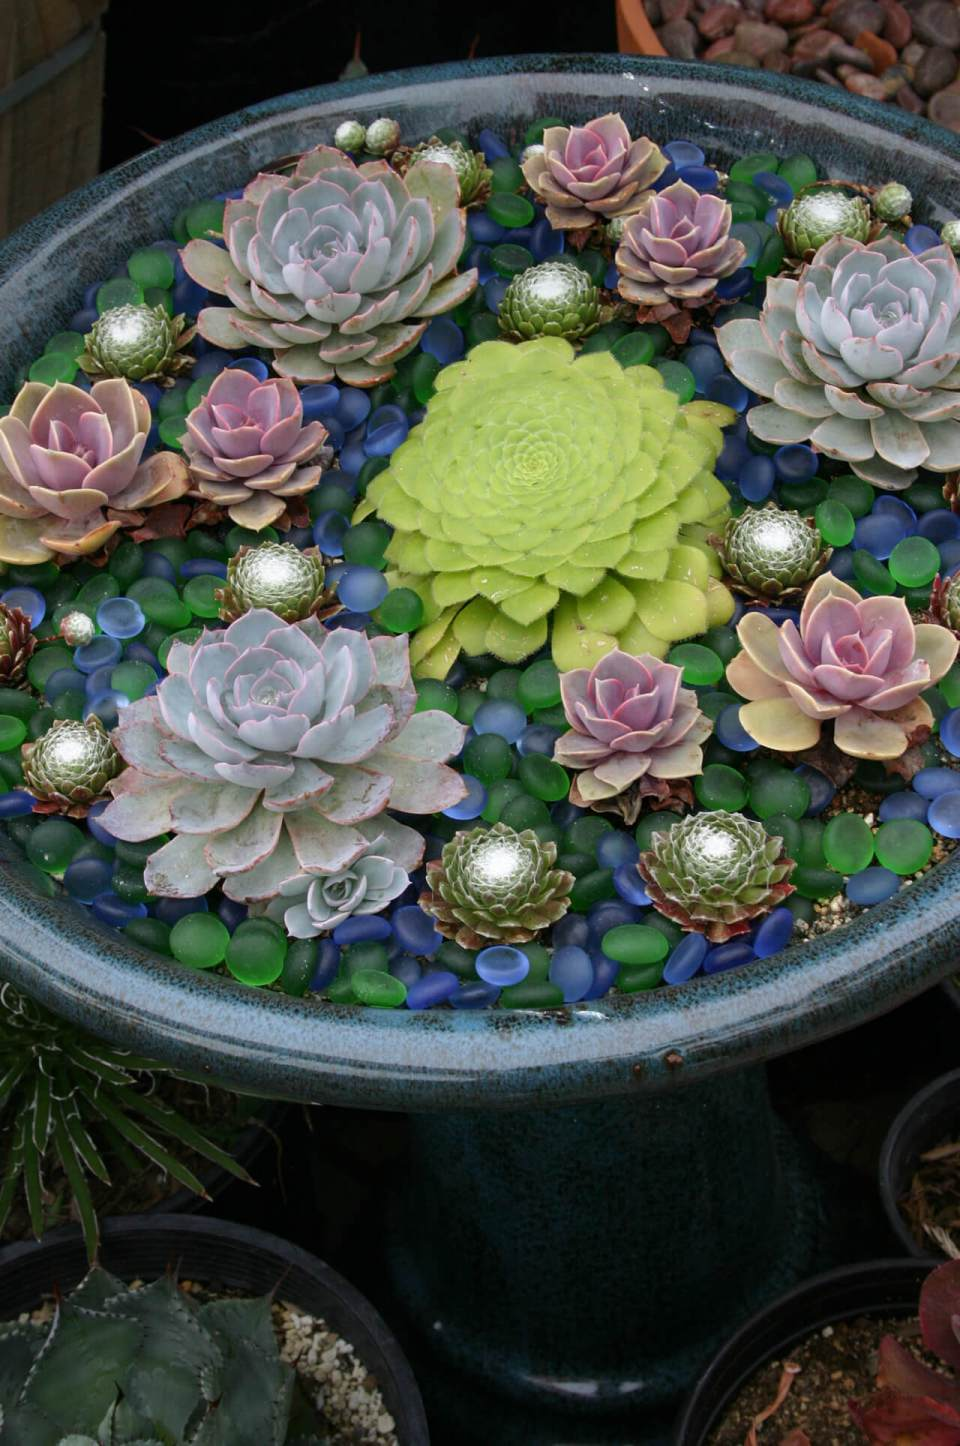 Succulent Garden Ideas: A Mid-Summer Night's Dream